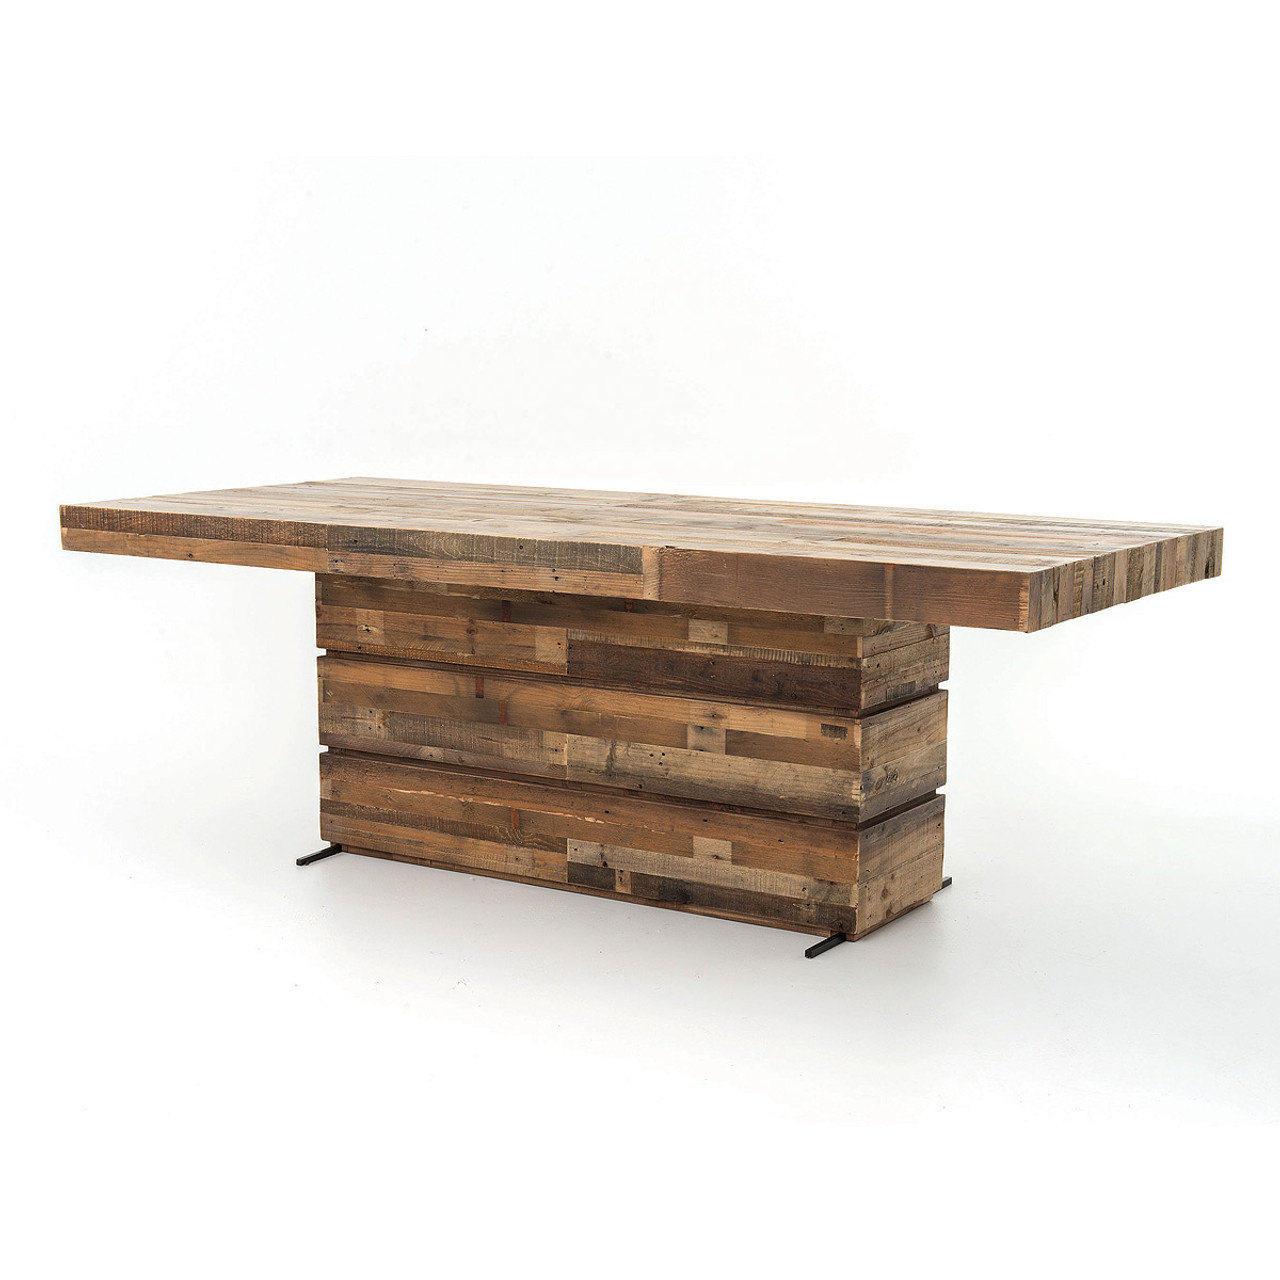 Angora Rustic Reclaimed Wood Dining Table Zin Home - 84 inch dining room table